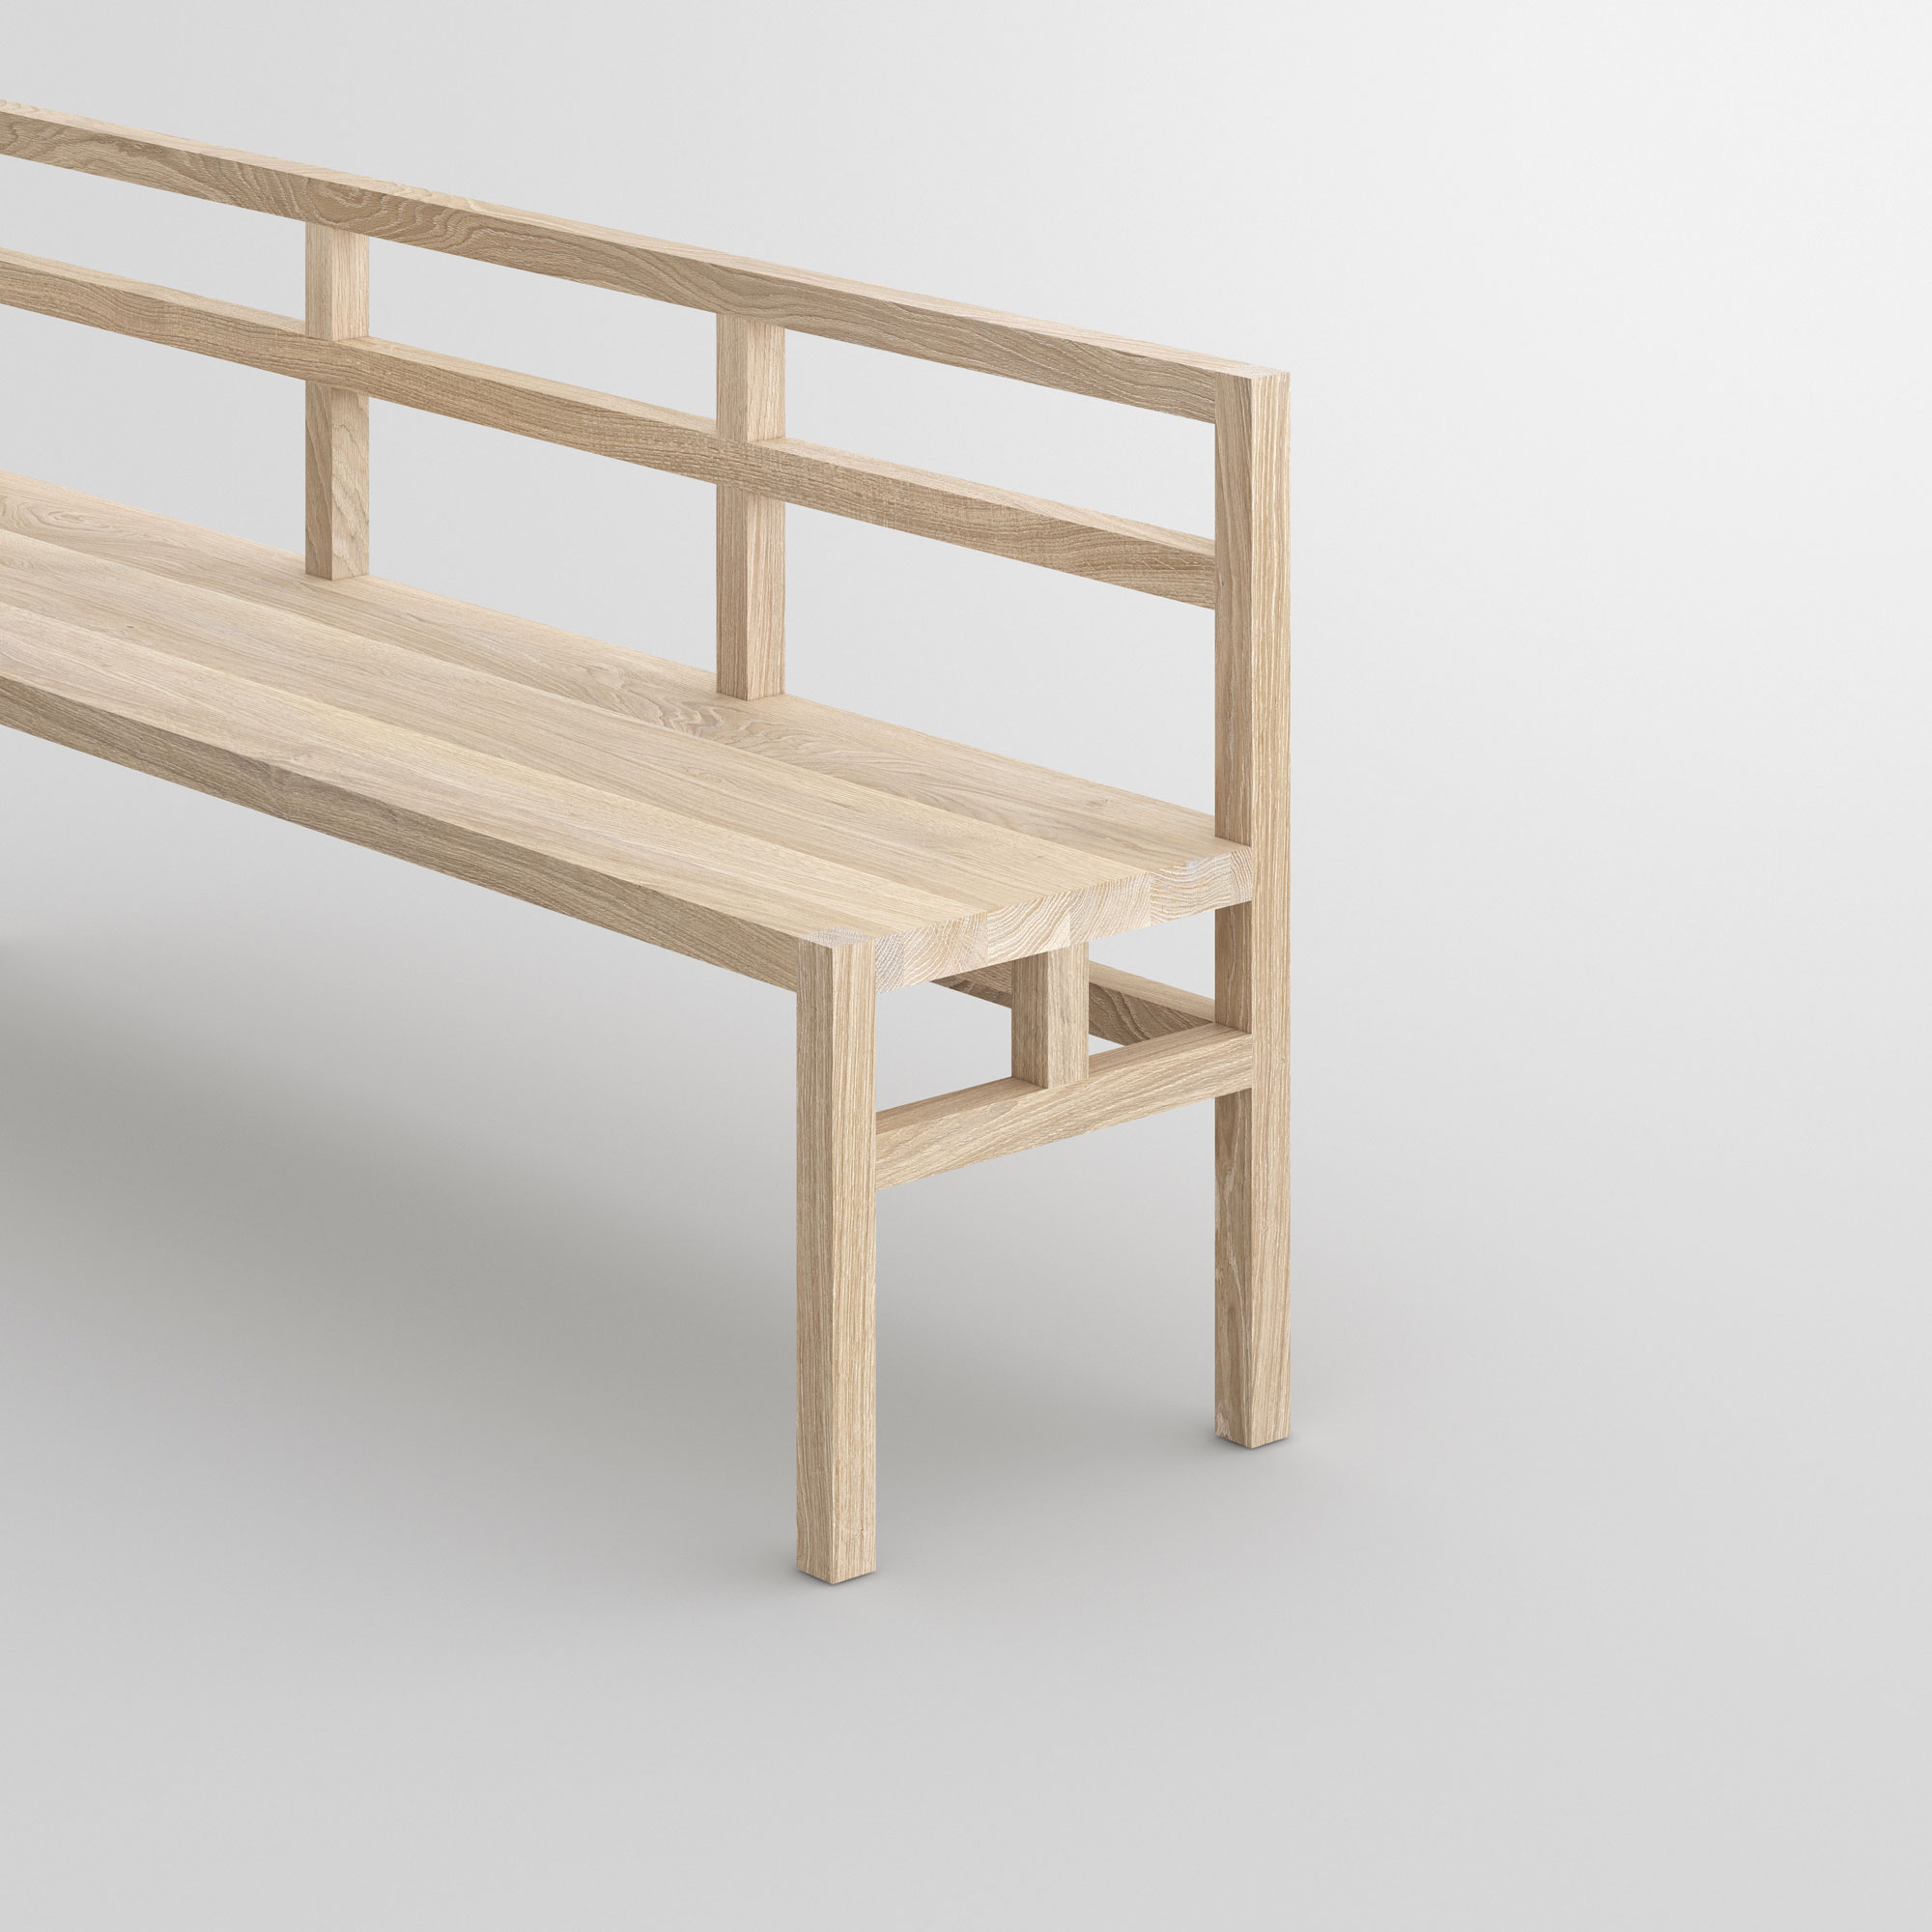 Bench with Backrest SENA RL cam2 custom made in solid wood by vitamin design